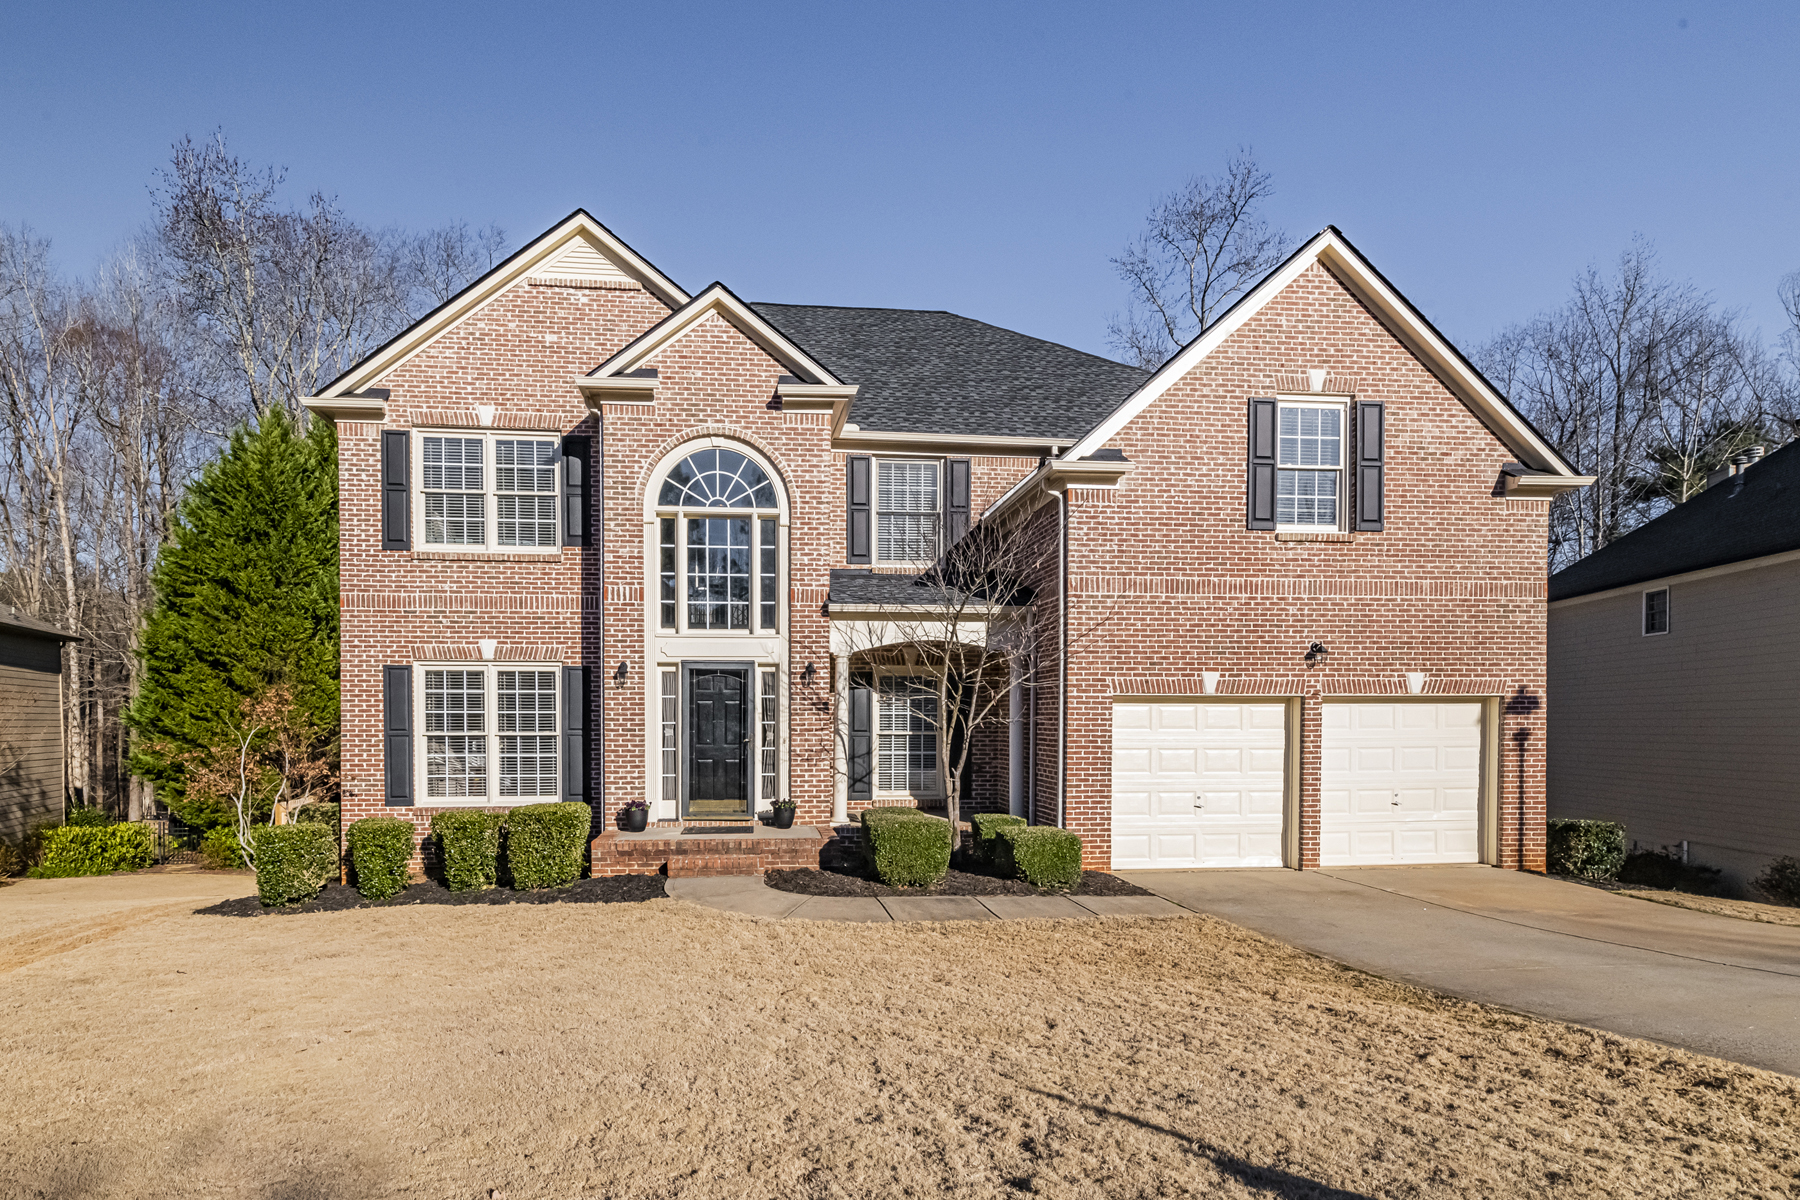 Single Family Homes for Active at Great Opportunity in a Coveted Community in Dacula 2817 Stockbridge Way Dacula, Georgia 30019 United States